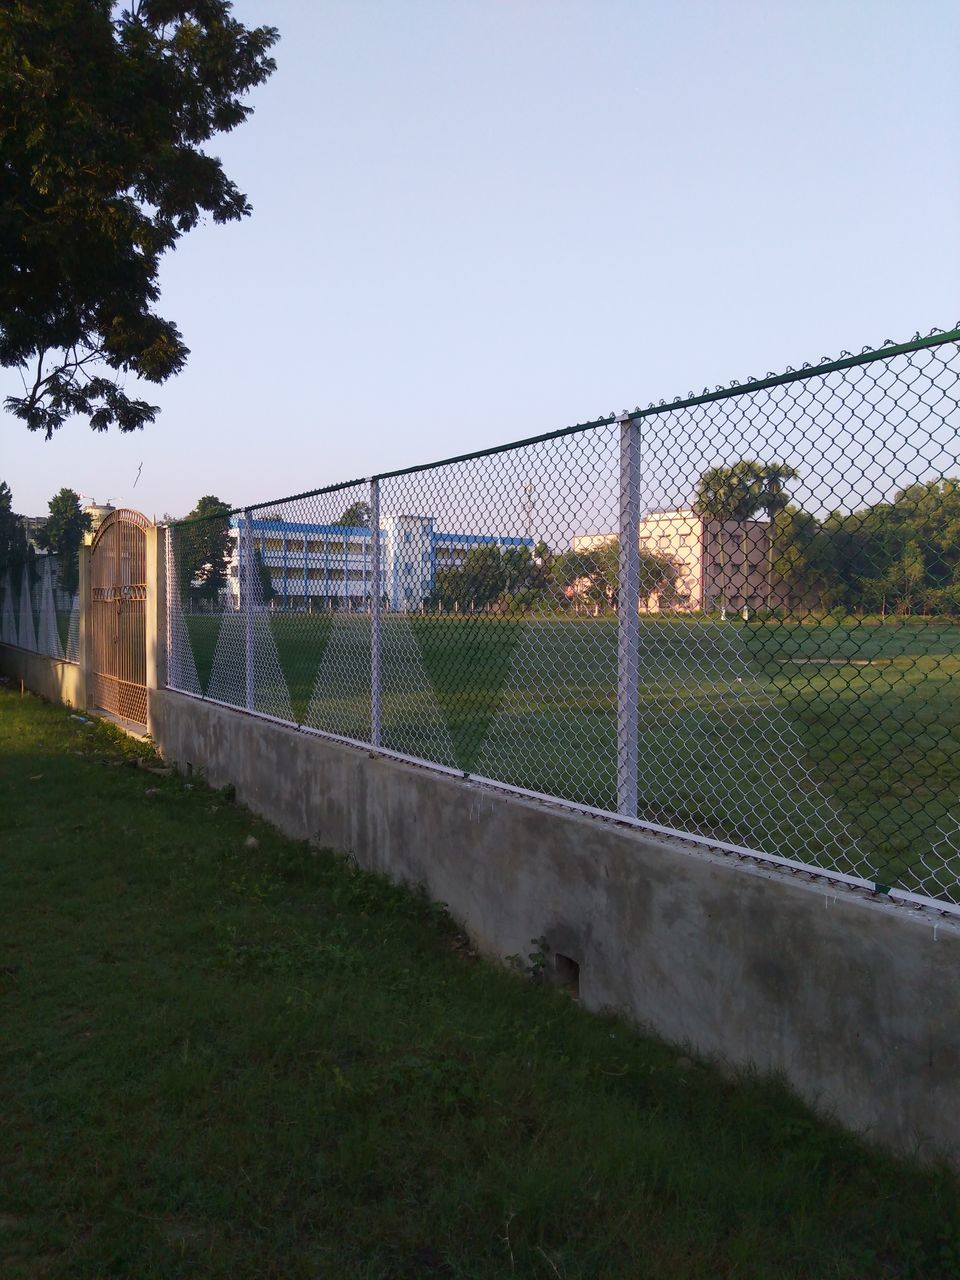 grass, tree, field, outdoors, day, playing field, no people, sky, clear sky, sport, growth, soccer field, nature